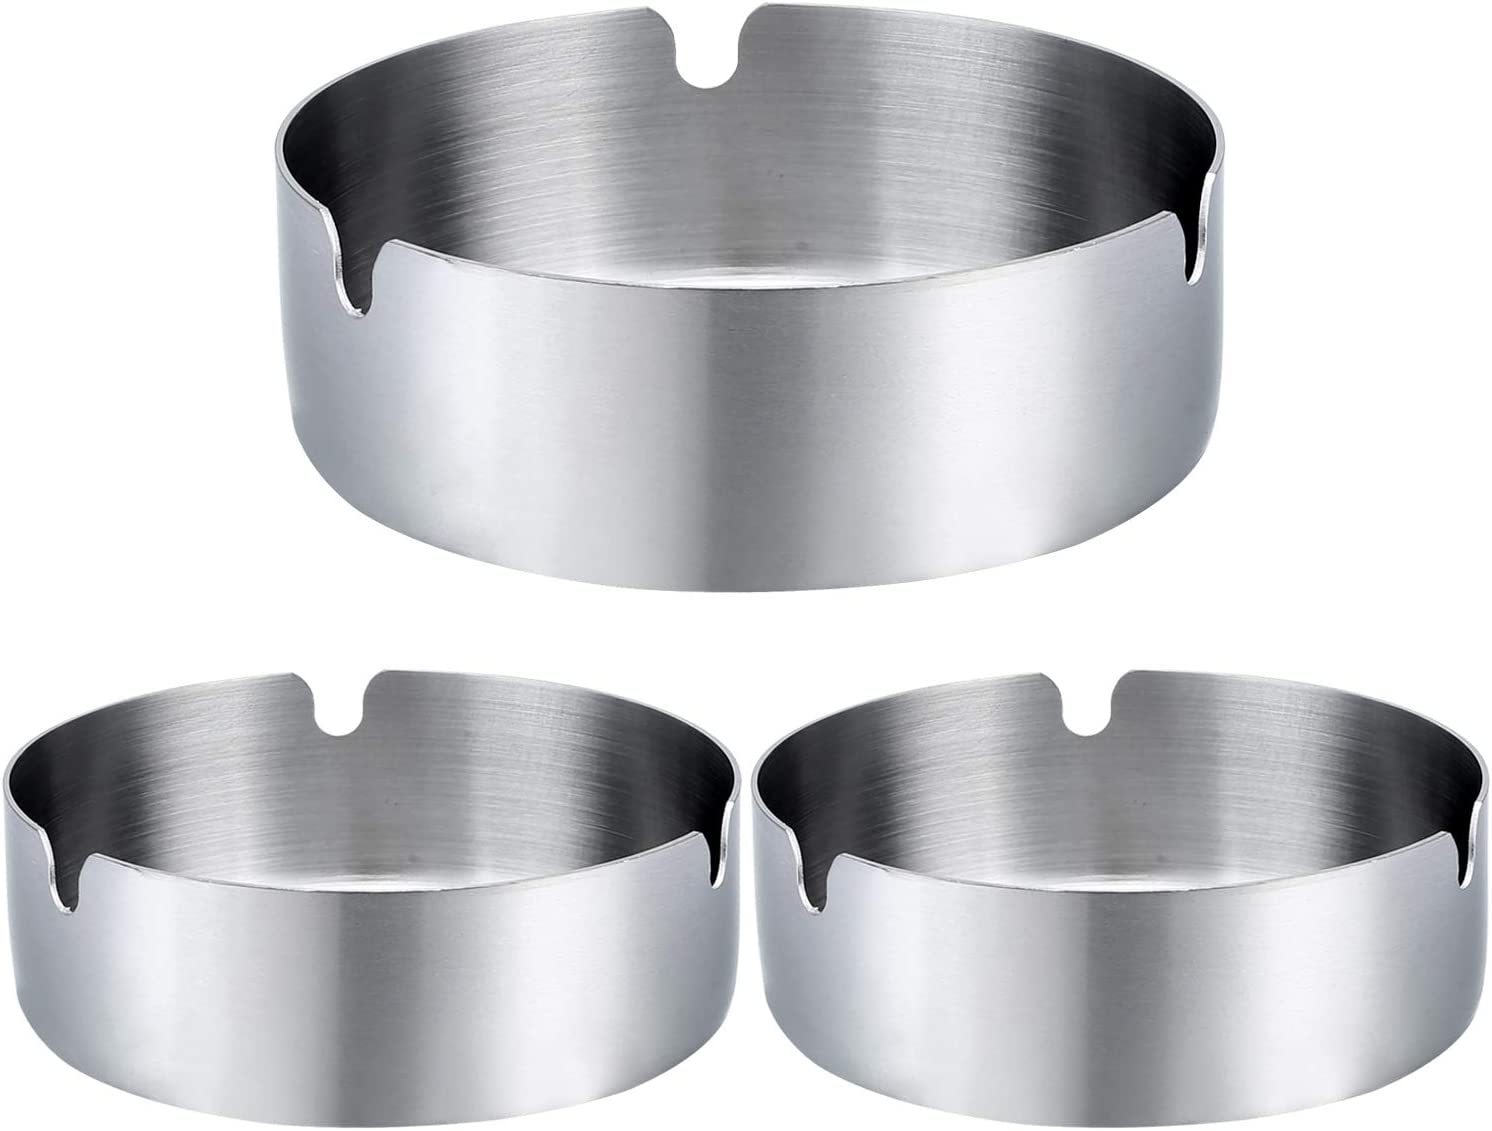 Pack of 3 Cigar Ashtray Tabletop Round Stainless Steel Ash Tray Suitable for Cigarette Ash Holder for Home,Hotel,Restaurant,Indoor,Outdoor